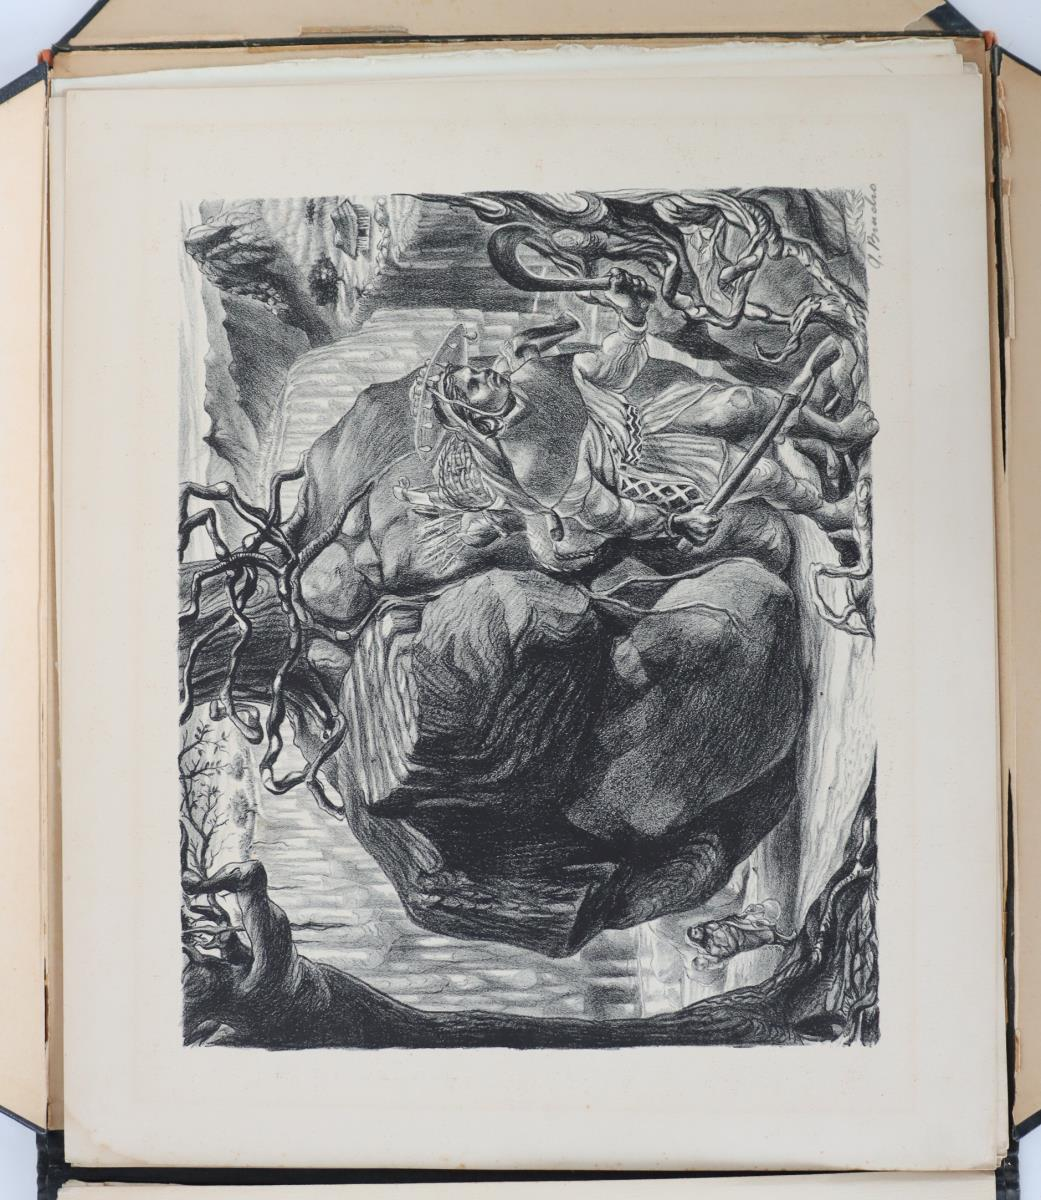 Various Artists, Mexican People Portfolio - Image 8 of 12